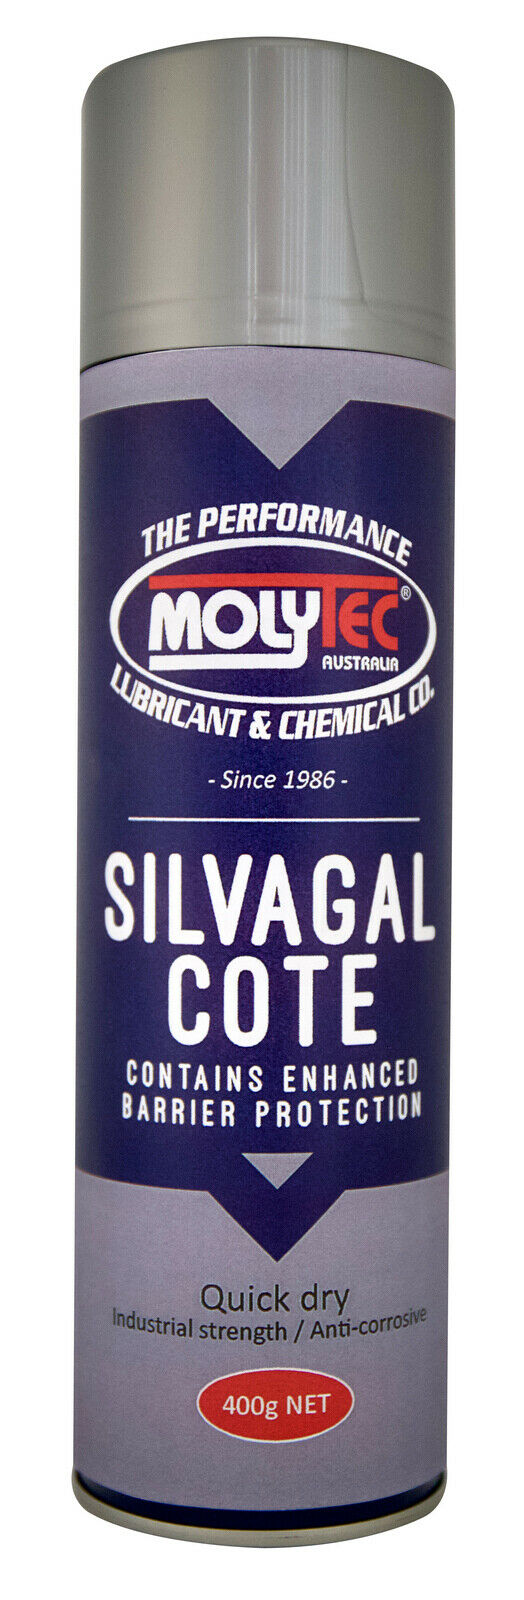 Gal Cote Silvagal Cote Spray